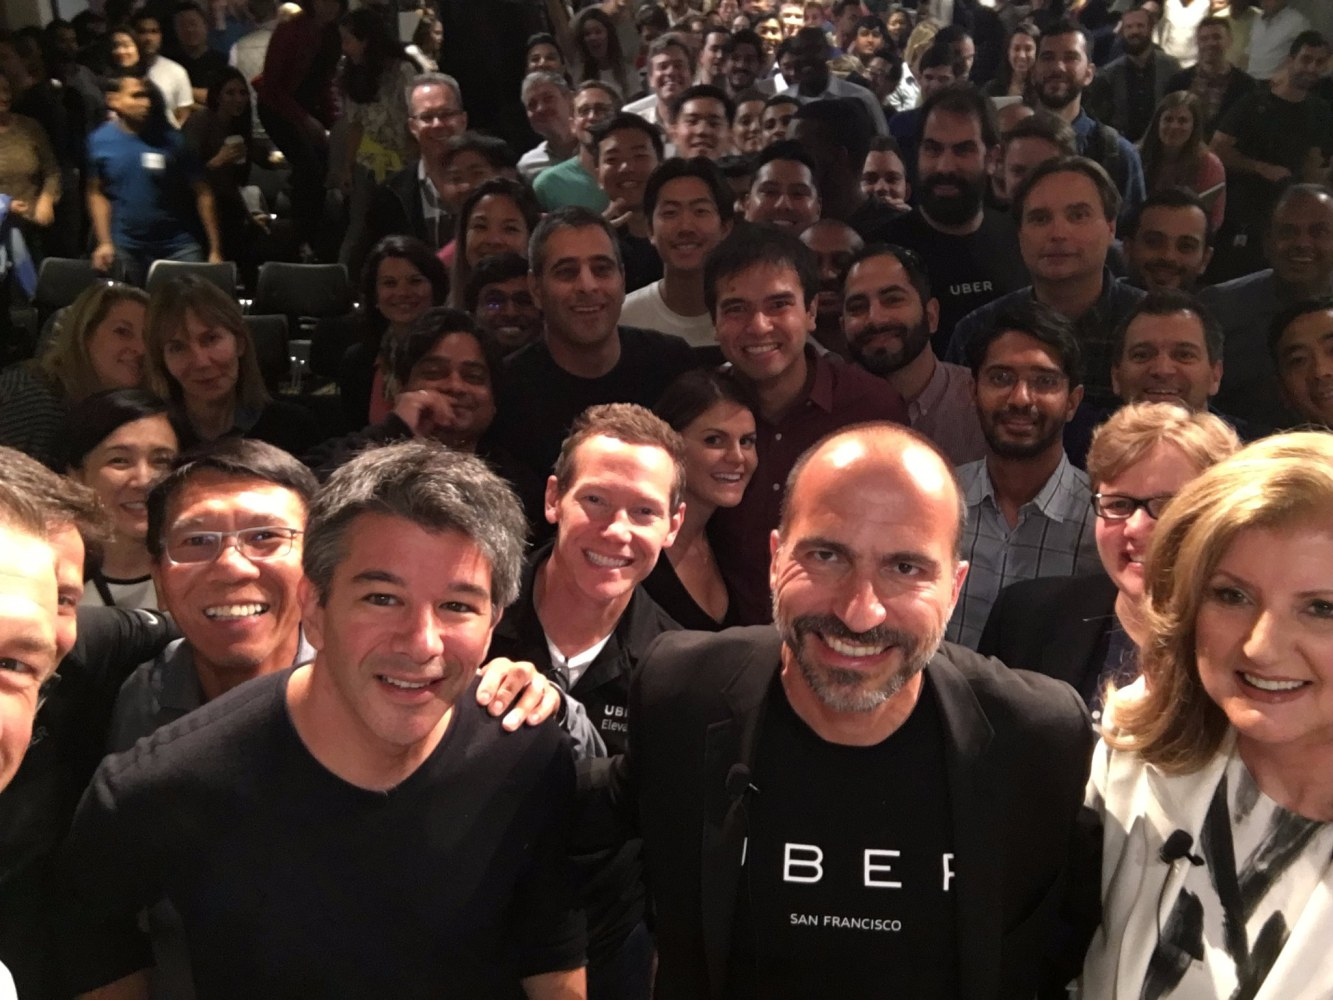 From left Uber founder Travis Kalanick poses with Dara Khosrowshahi and Arianna Huffington. @ariannahuff via Twitter